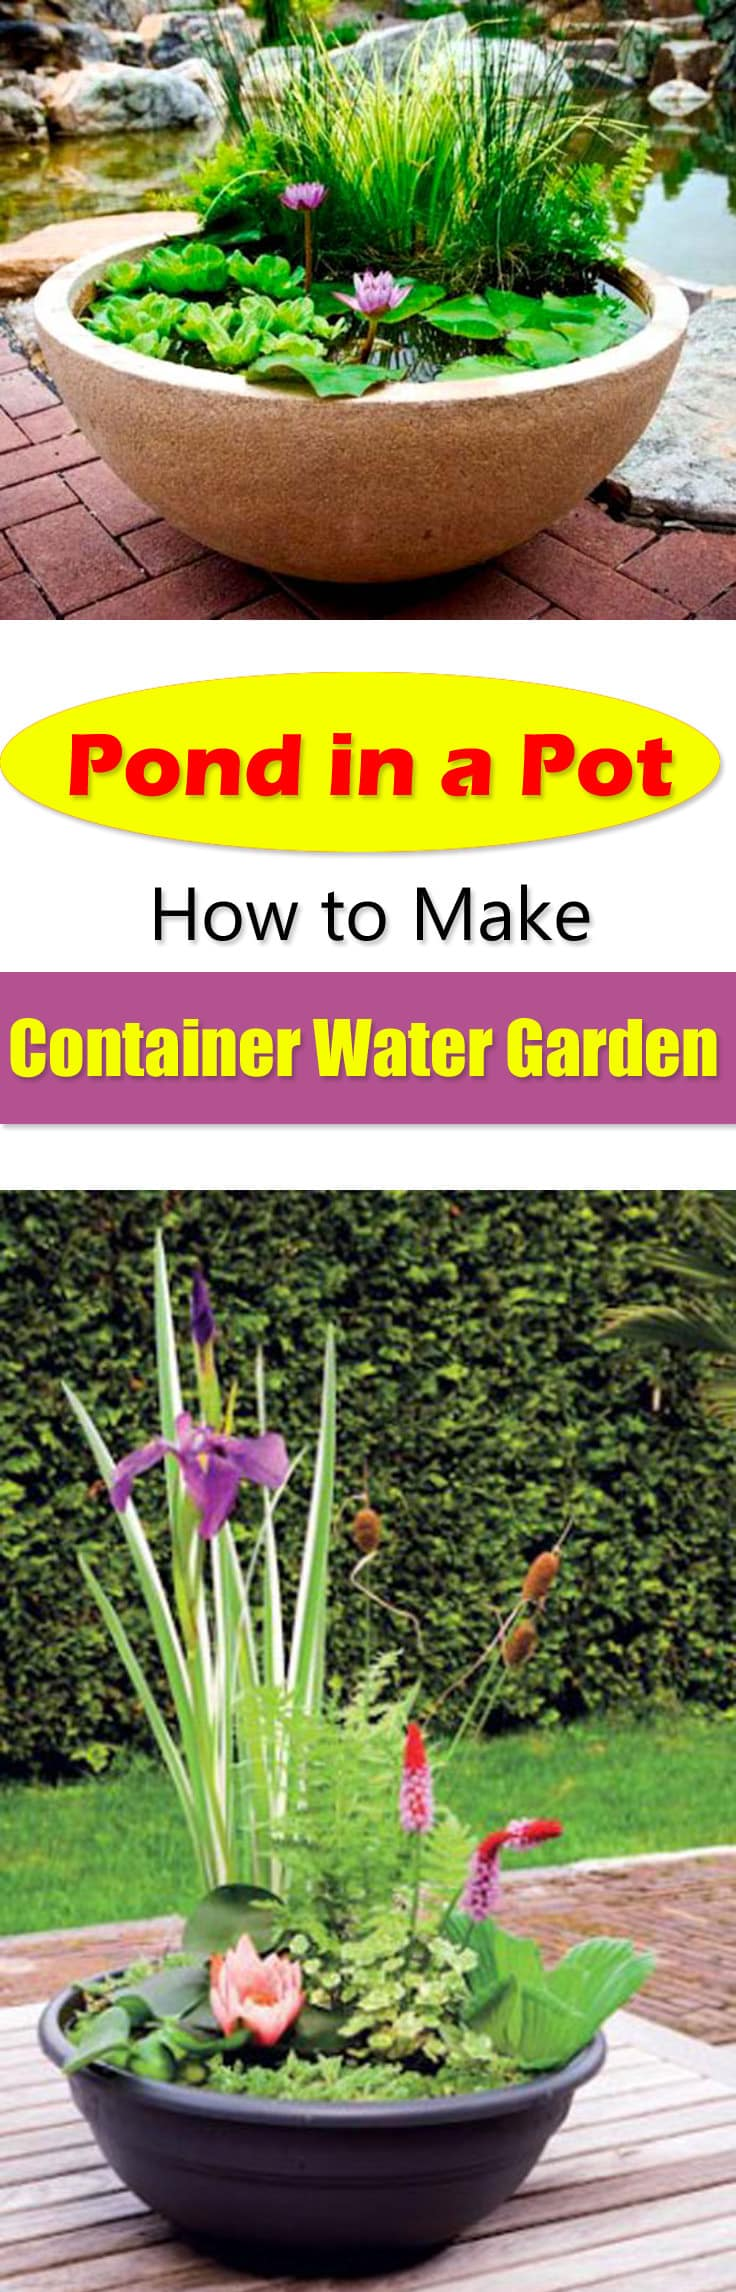 Pond in a pot create a container water garden balcony garden web for How to water a garden